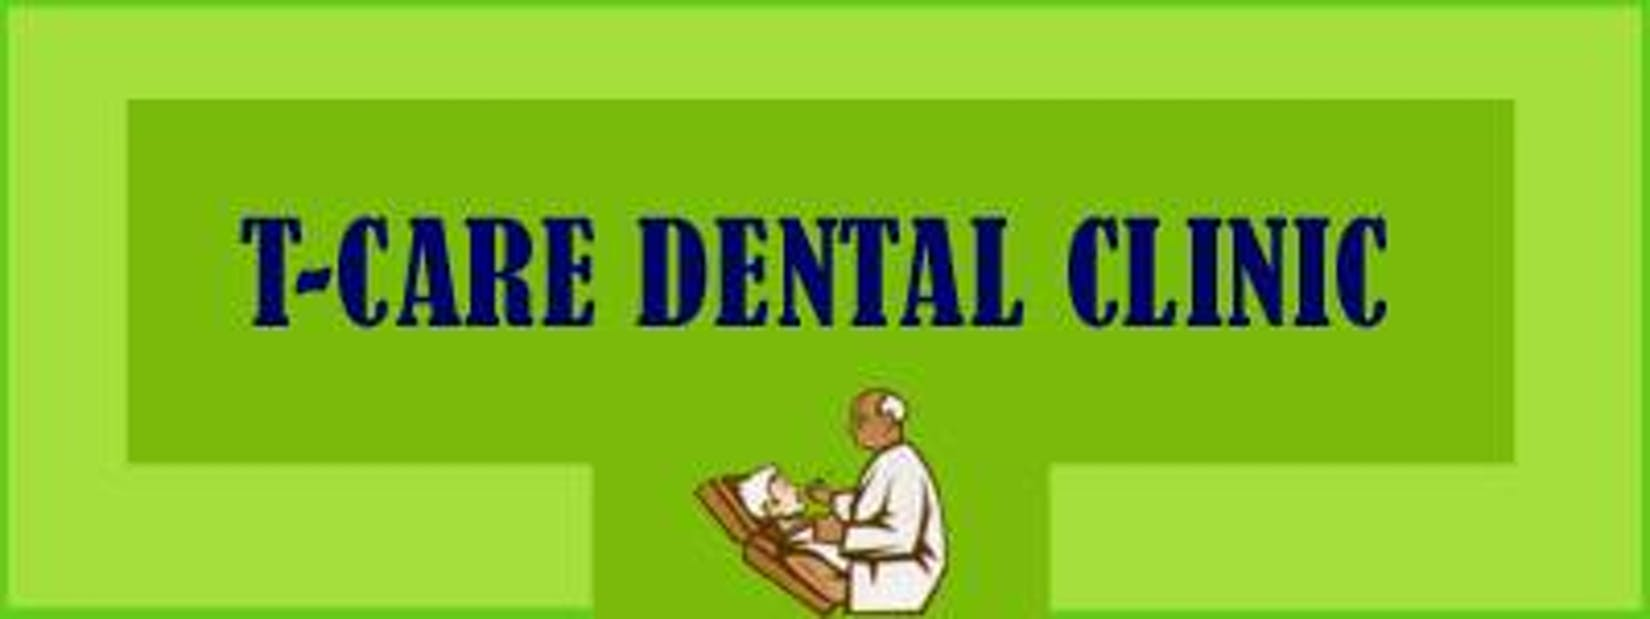 T CARE DENTAL CLINIC | Beauty